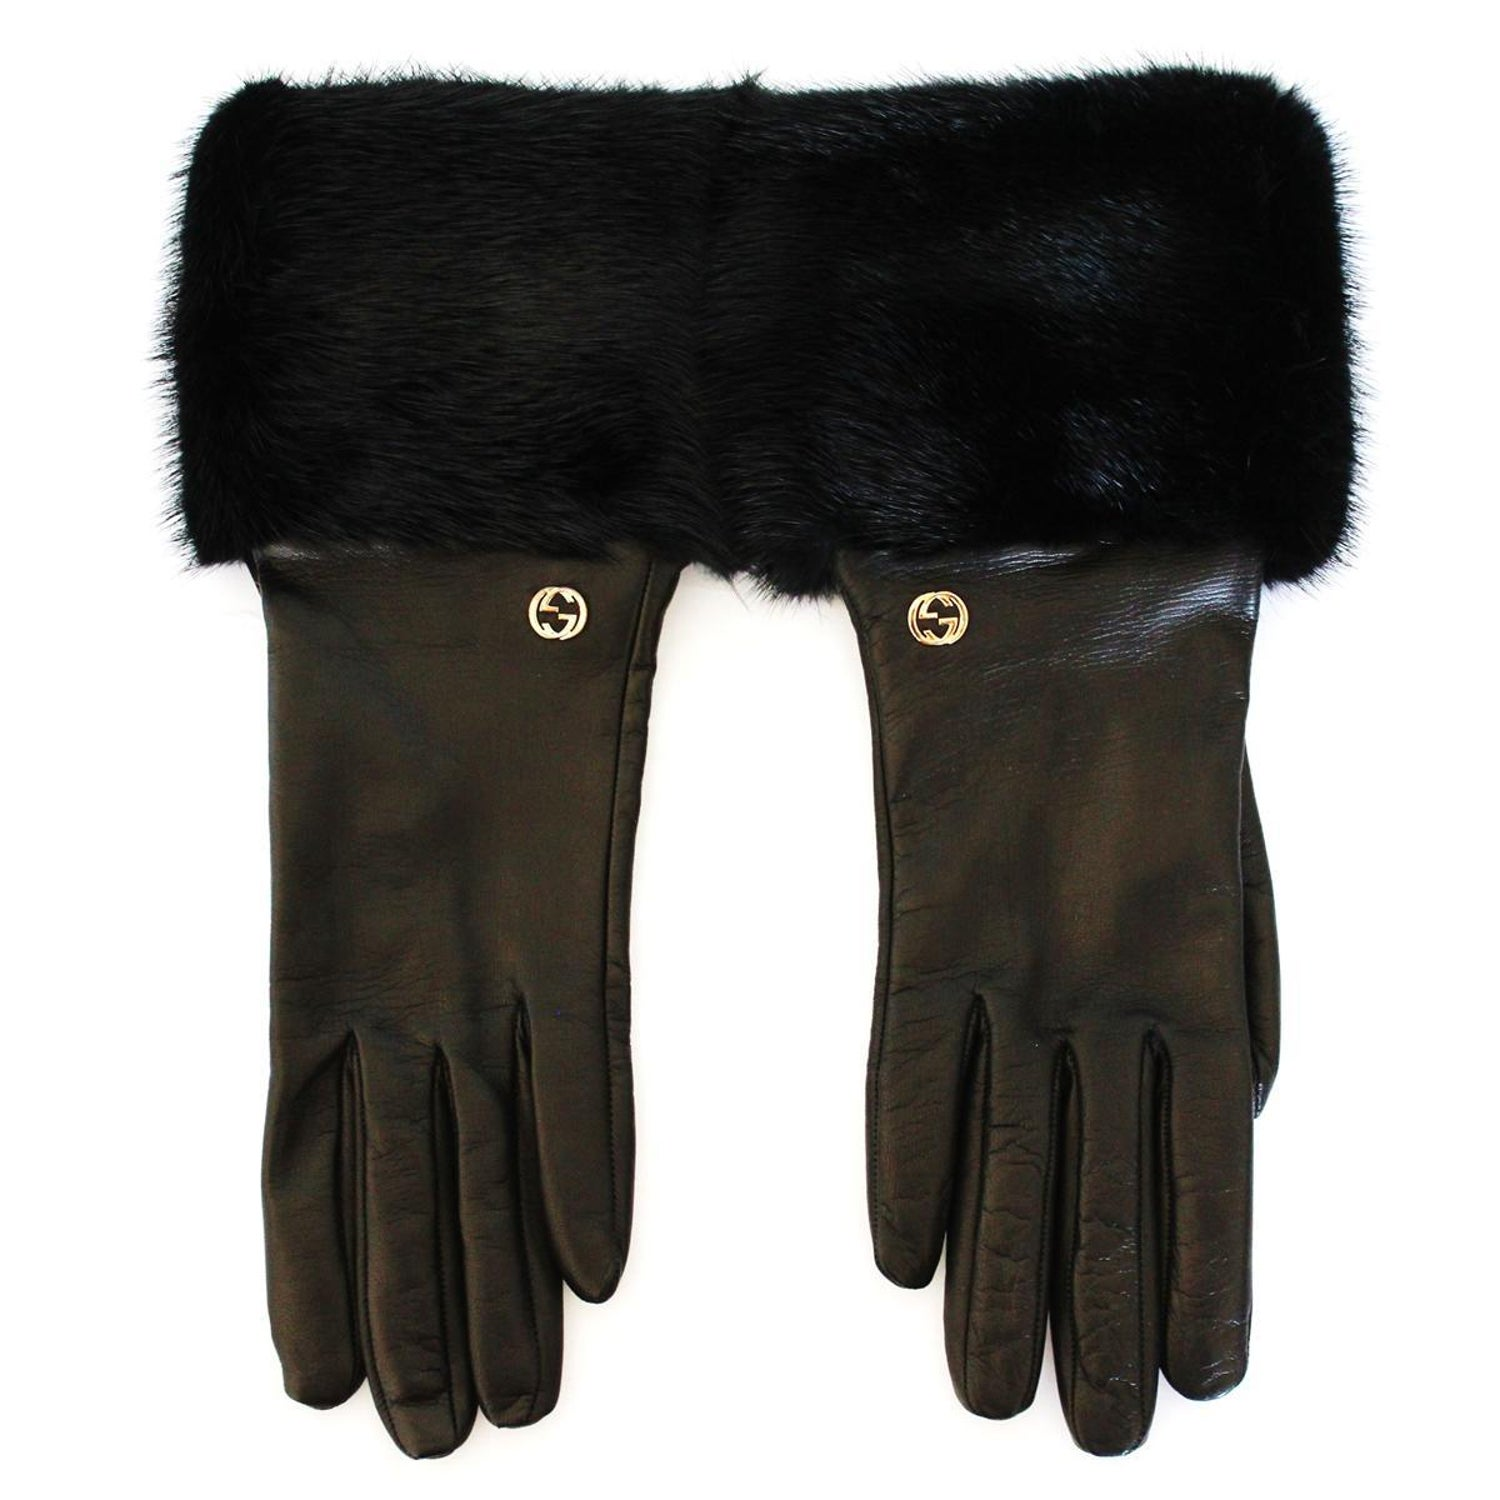 8ed86093 New Gucci Black Leather and Mink Gloves 7,5 at 1stdibs